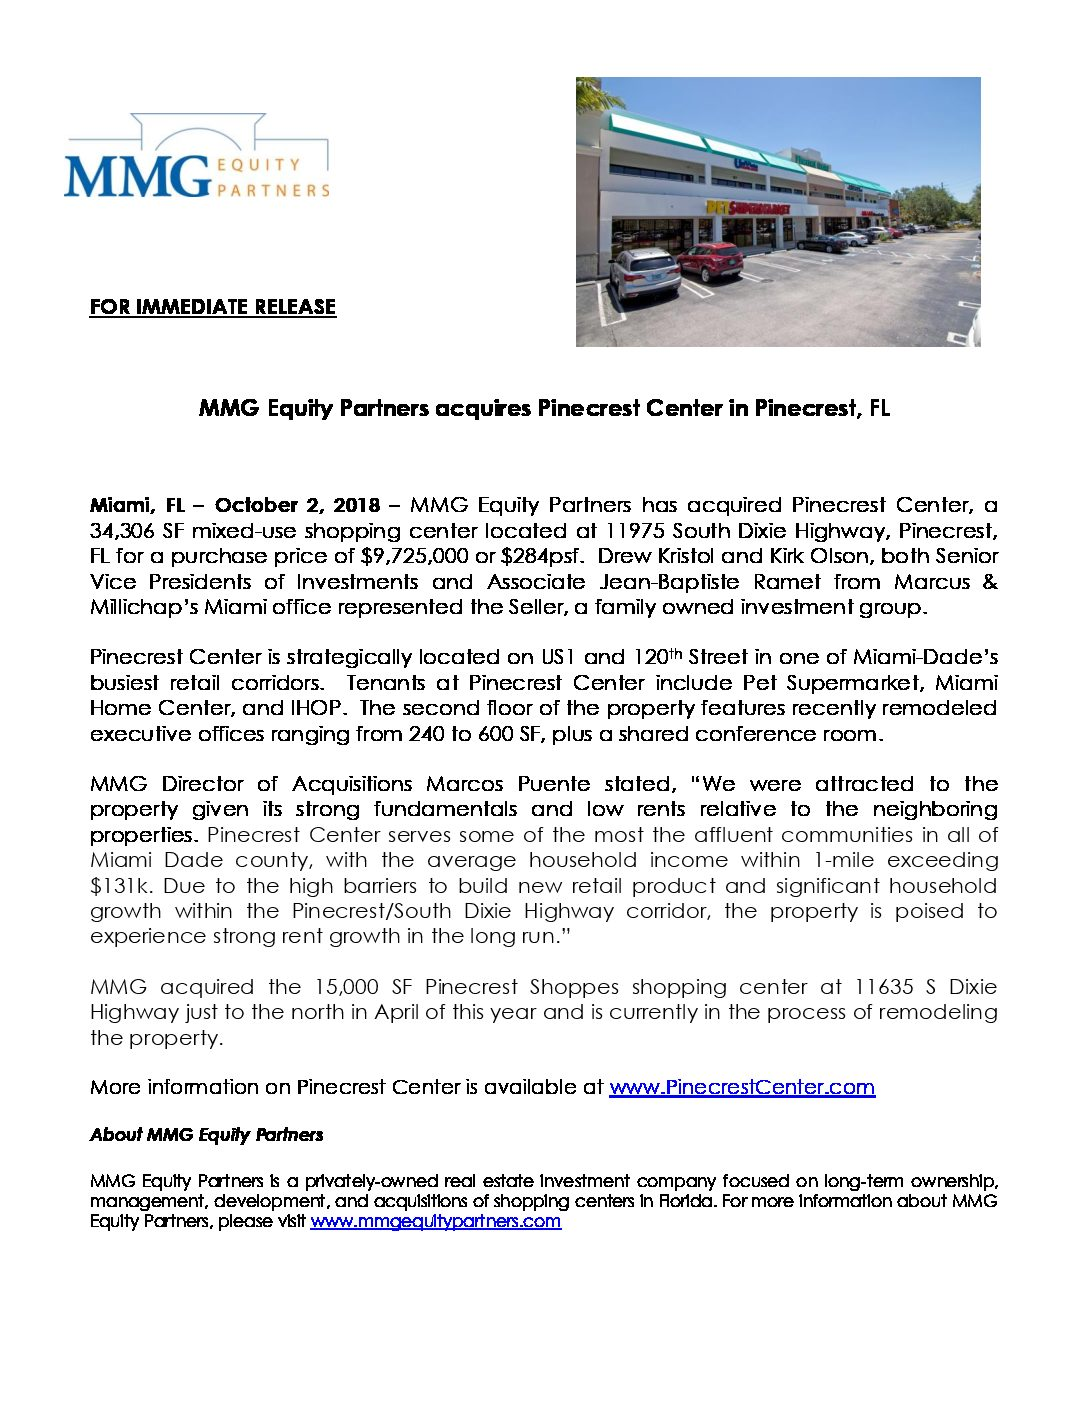 Press Release – MMG Acquires Pinecrest Center